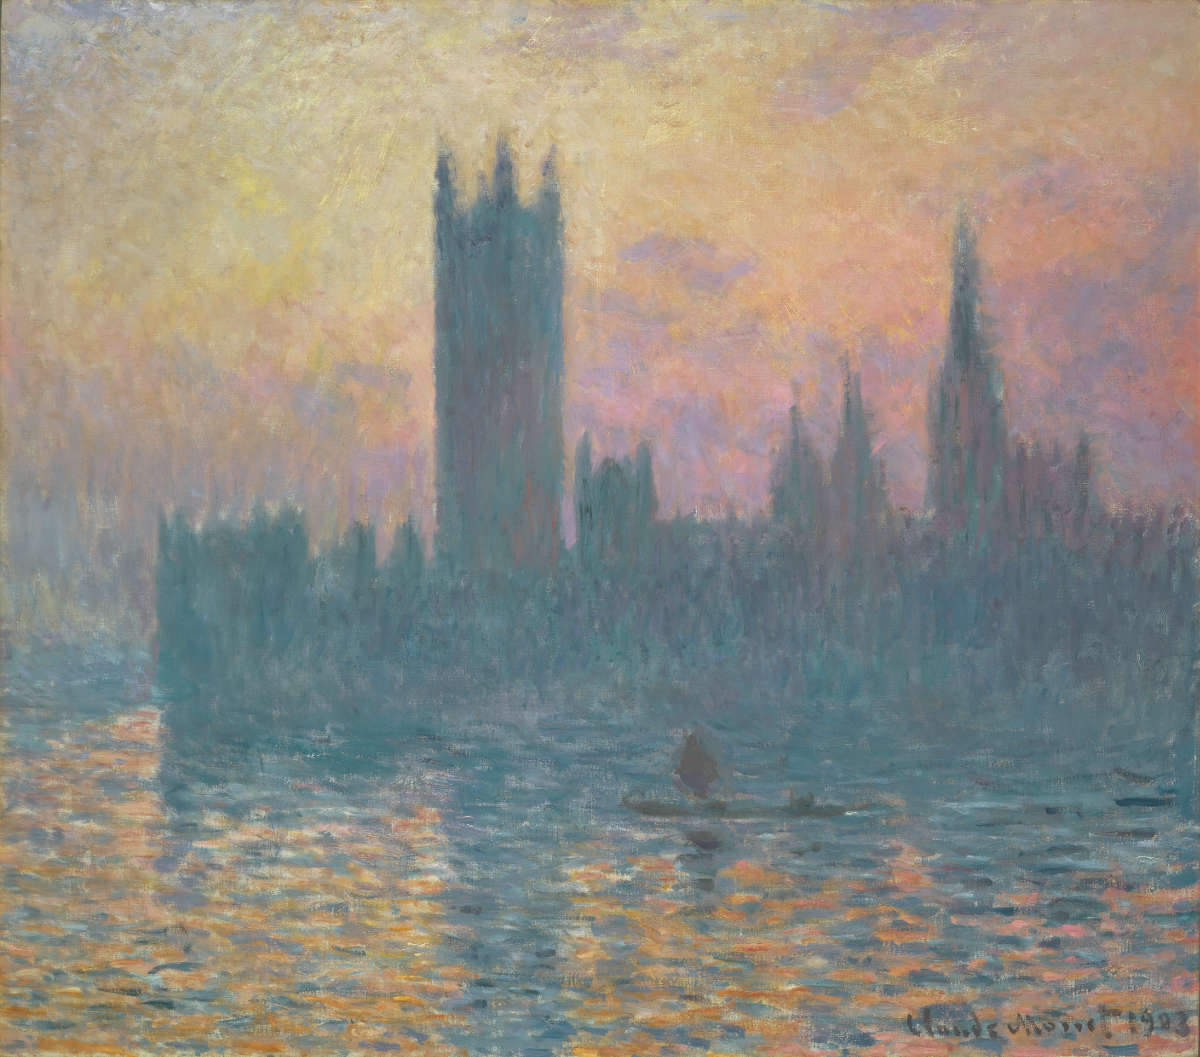 Fig. 5 – As Casas do Parlamento, Pôr do Sol, Claude Monet, 1903. National Gallery of Art, Washington. Chester Dale Coleção.